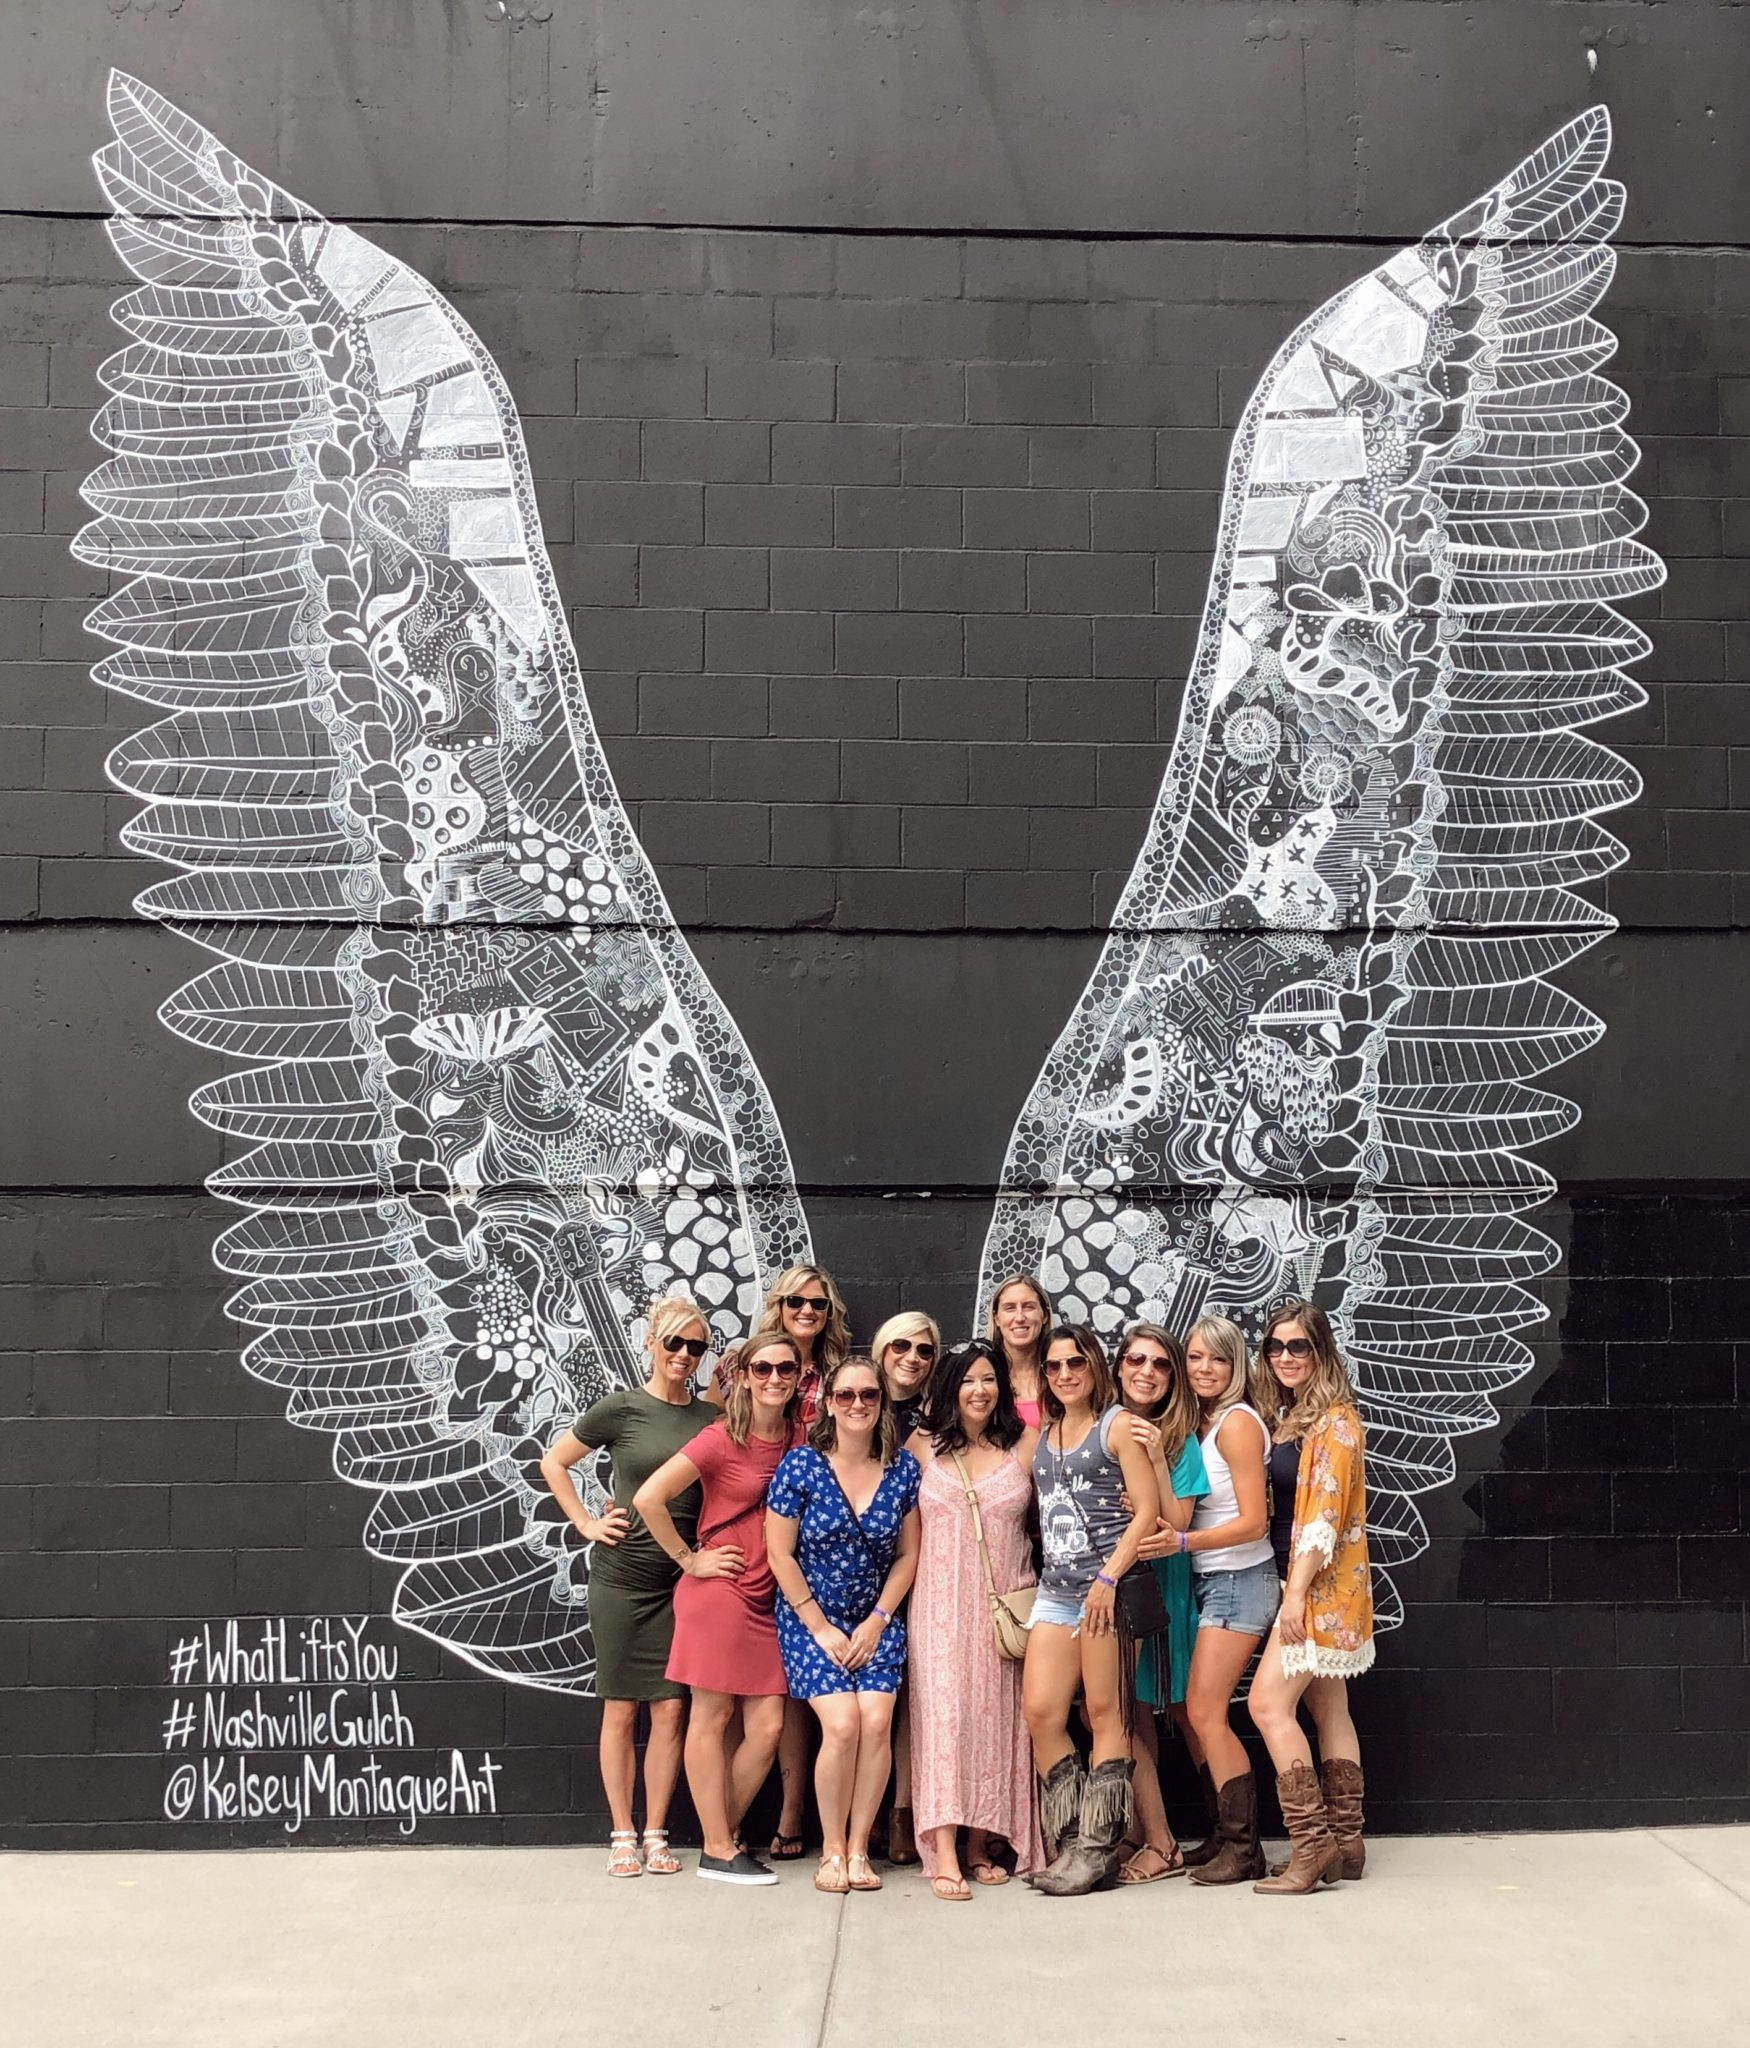 #Visitnashville, nashville hot chicken, nashville airbnb, nashville broadway, nashville bachelorette party, nashville downtown, nashville entertainment, nashville gulch